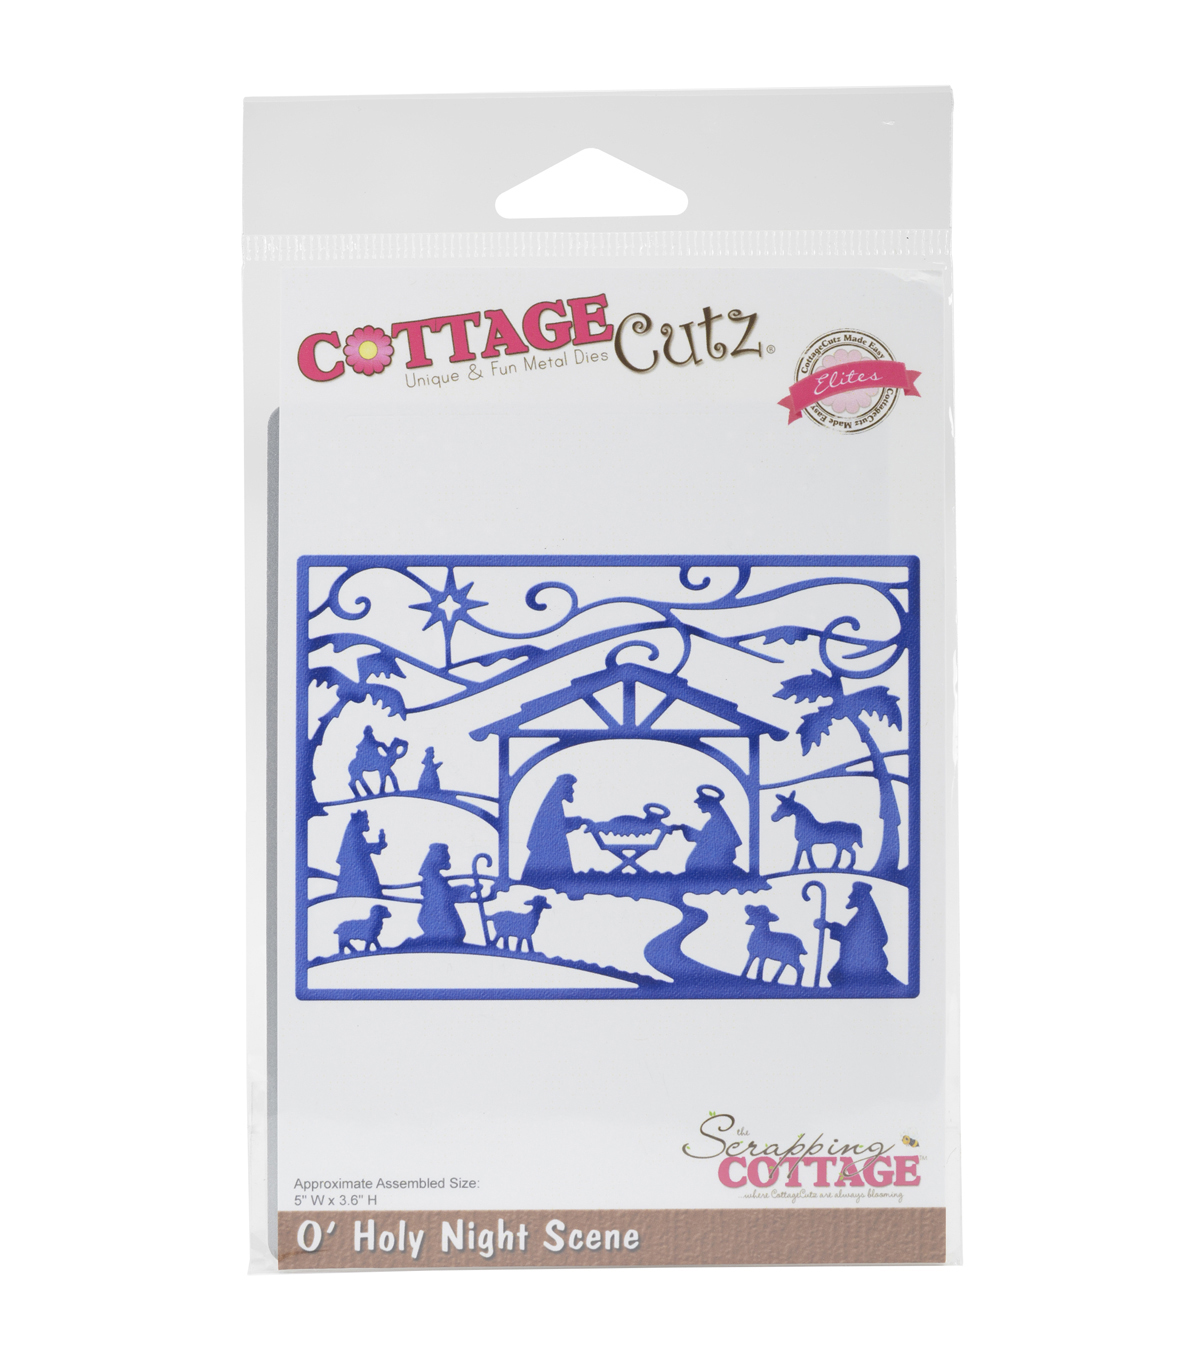 CottageCutz Elites Die-O\u0027Holy Night Scene